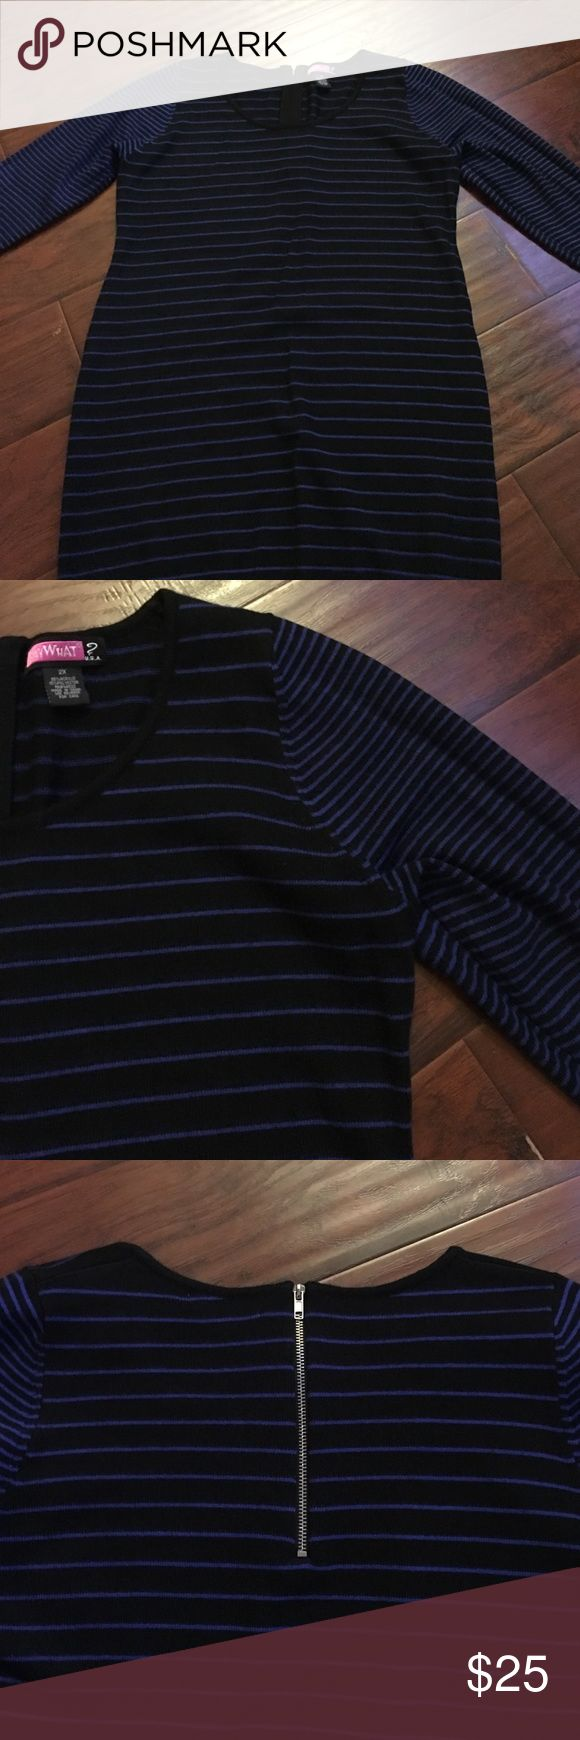 Black and blue long sleeve plus size dress Long sleeve stripped black and blue plus size dress, sweatshirt dress, perfect condition ❤️🎉FINAL PRICE🎉❤️ Dresses Long Sleeve